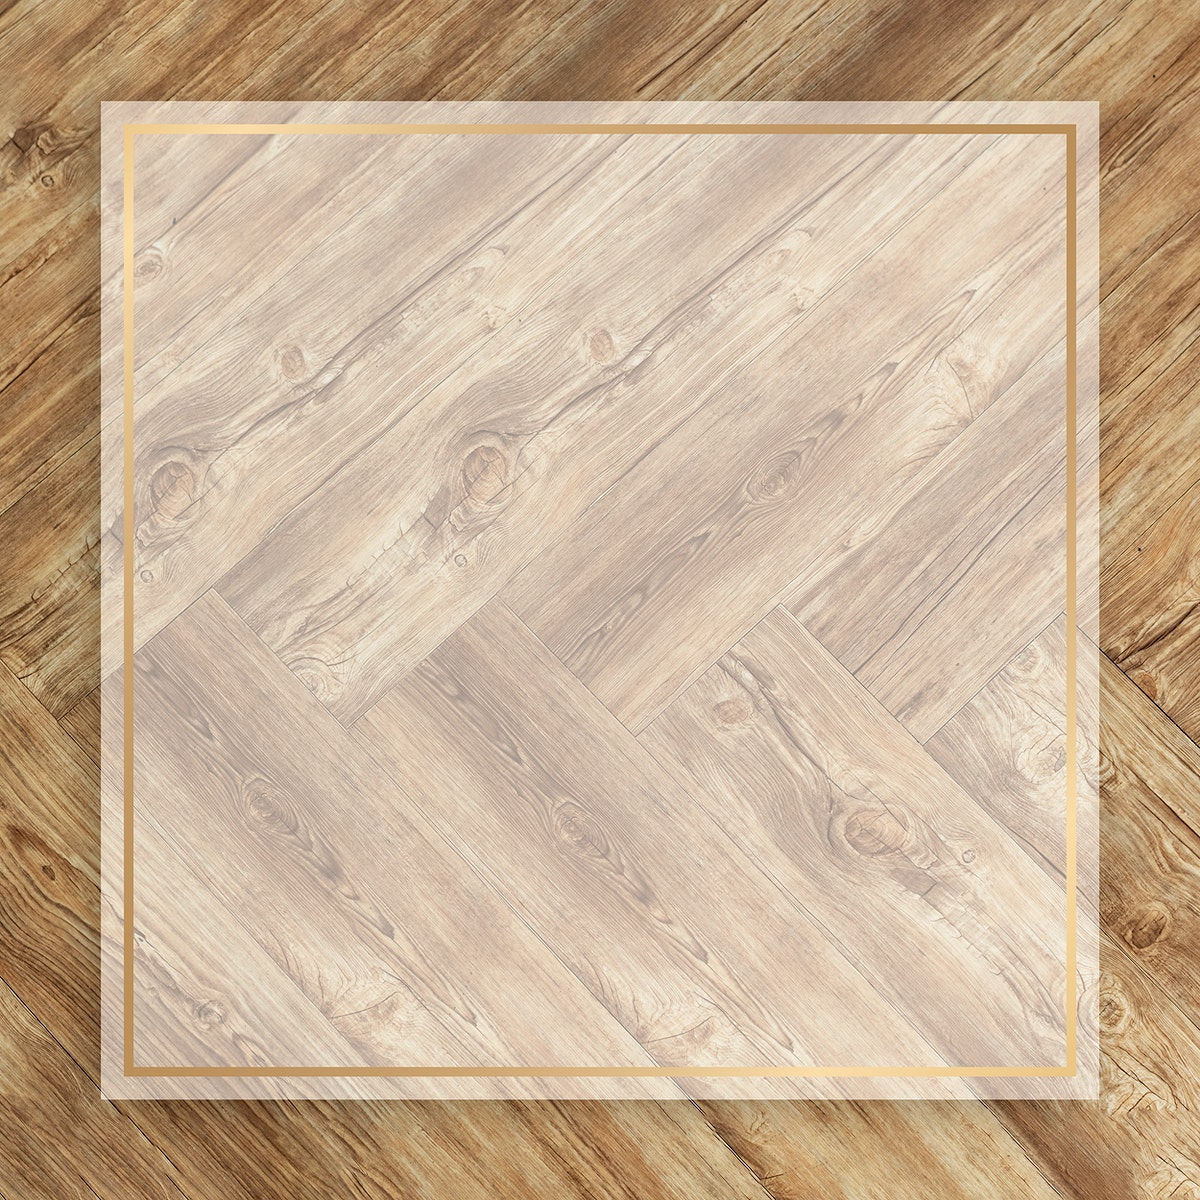 Blank golden square frame on a wooden background